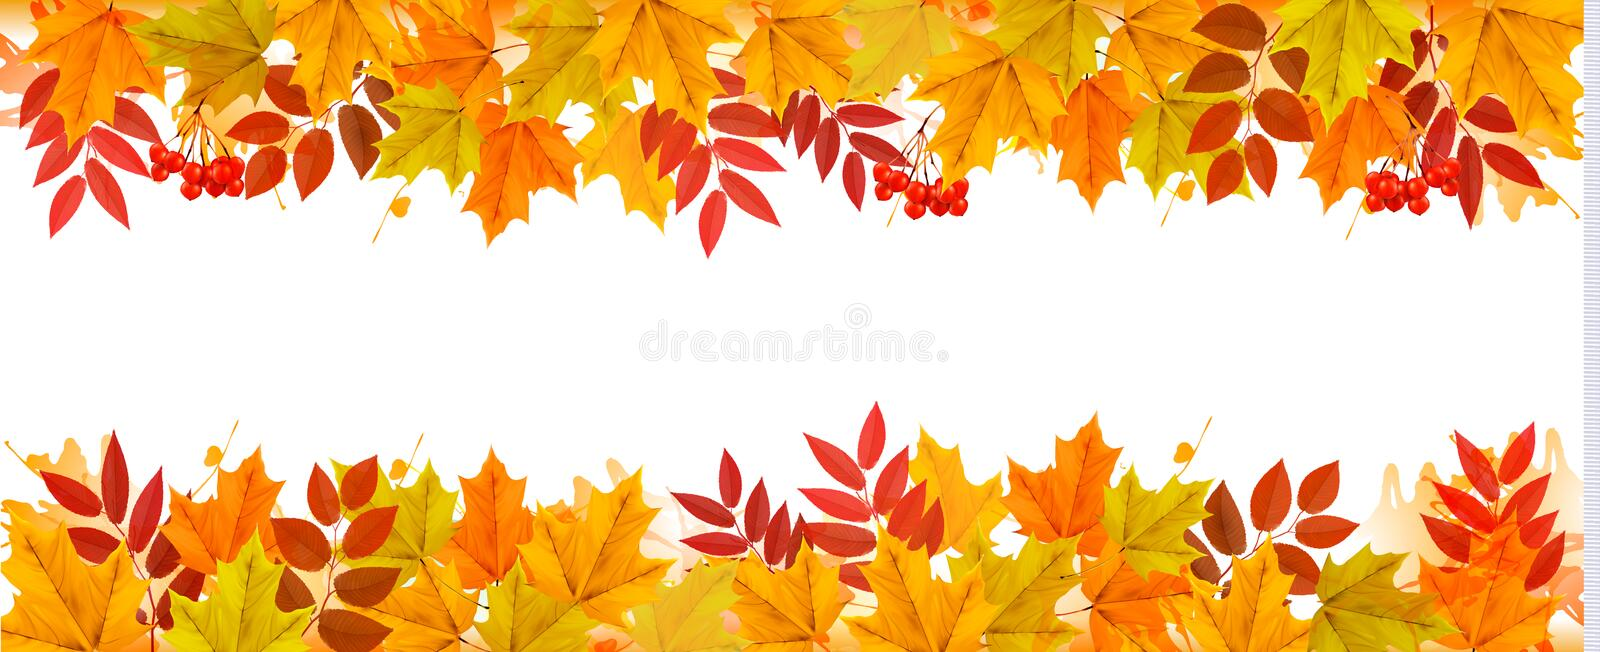 Caída Autumn Colorful Leaves Background del panorama ilustración del vector